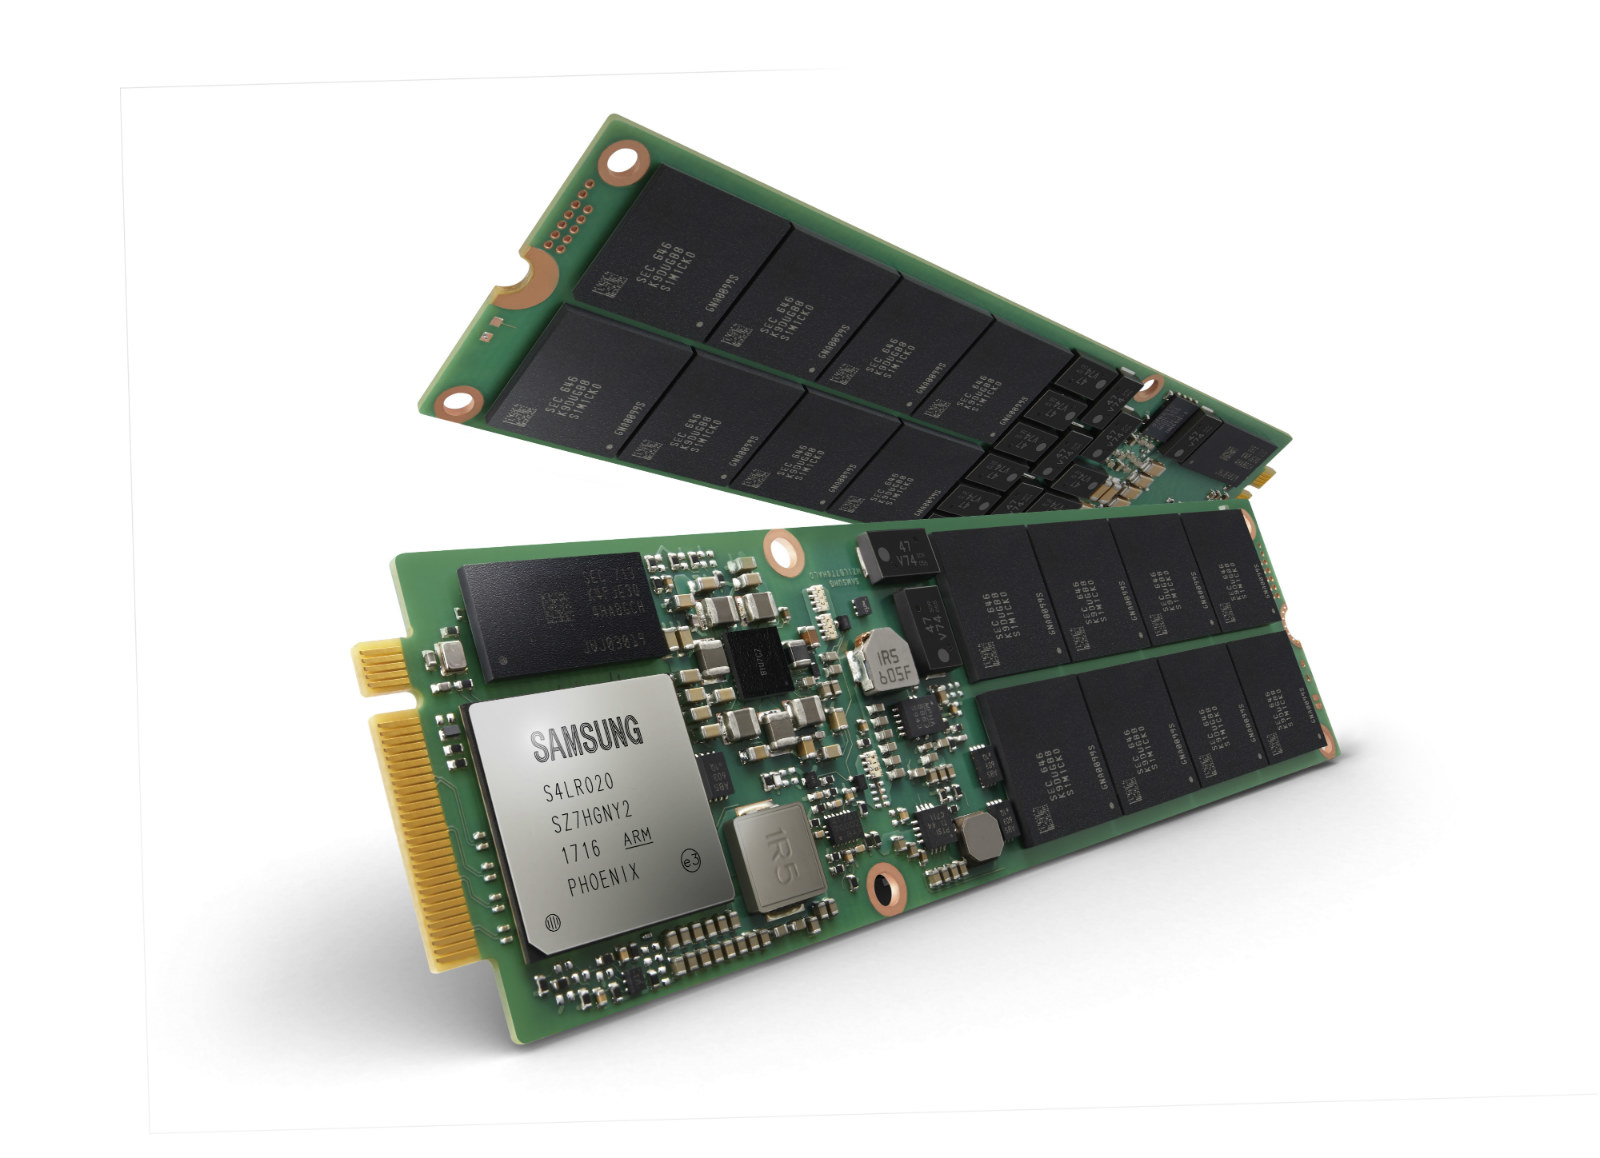 Samsung Presents Next V-NAND Generation